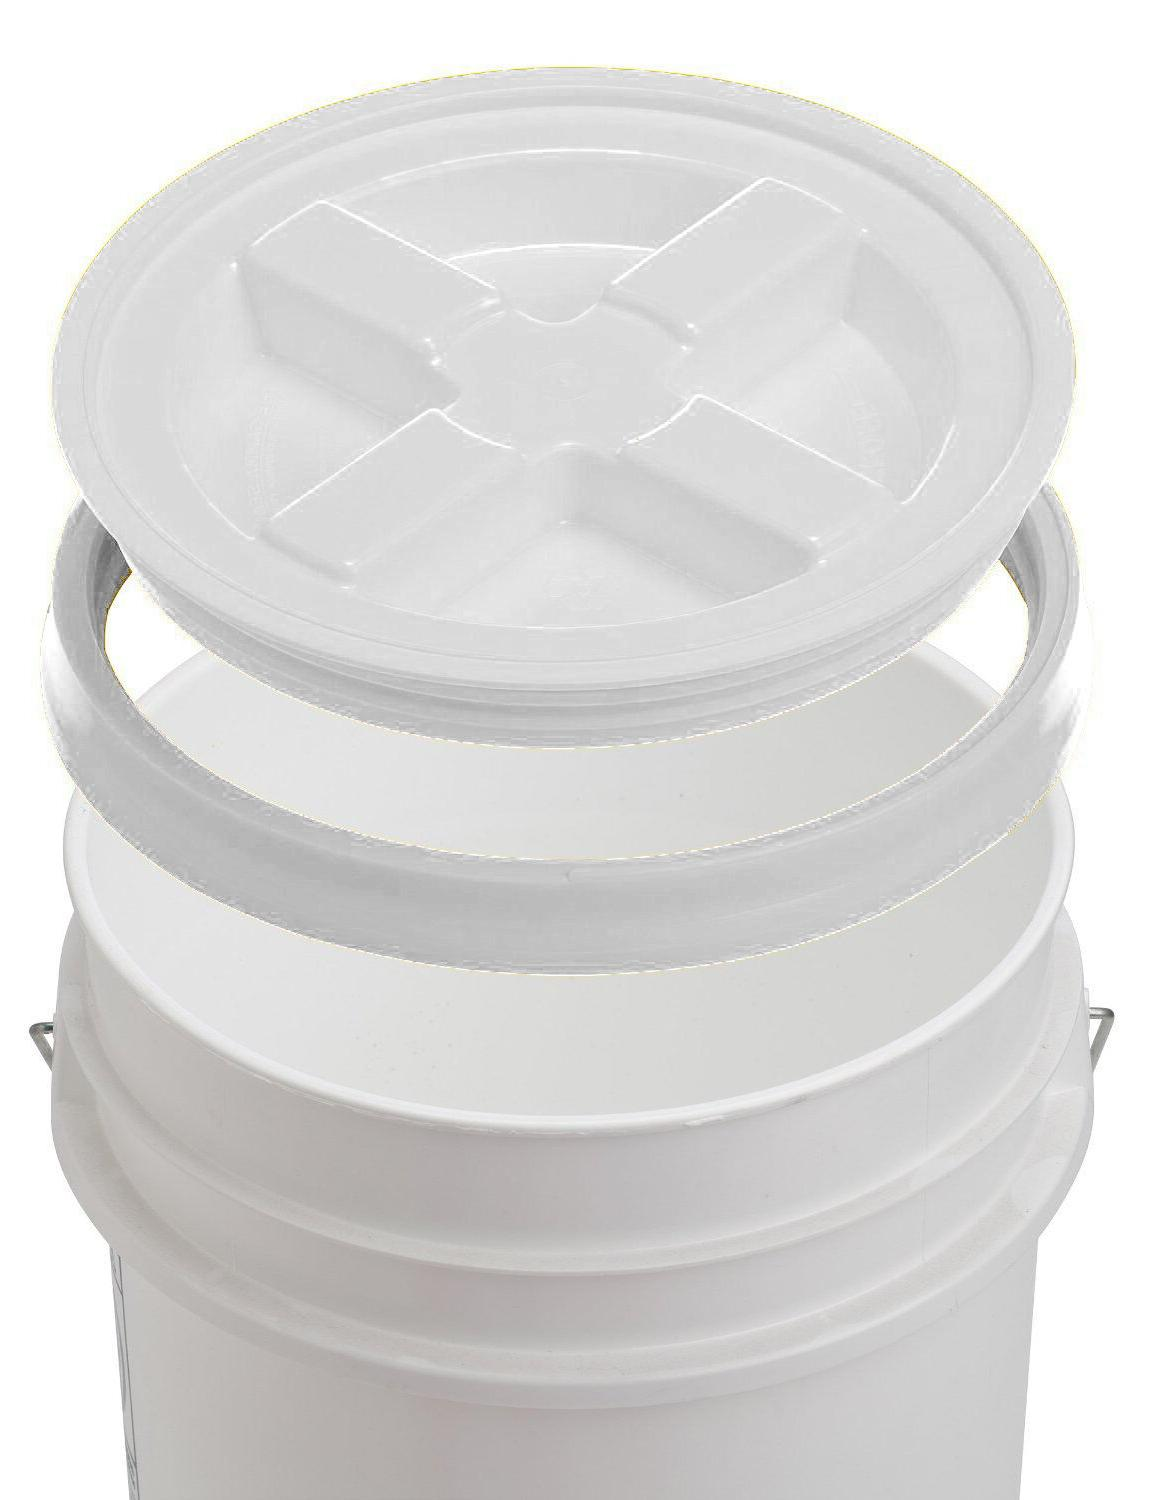 5 gallon white bucket with gamma seal